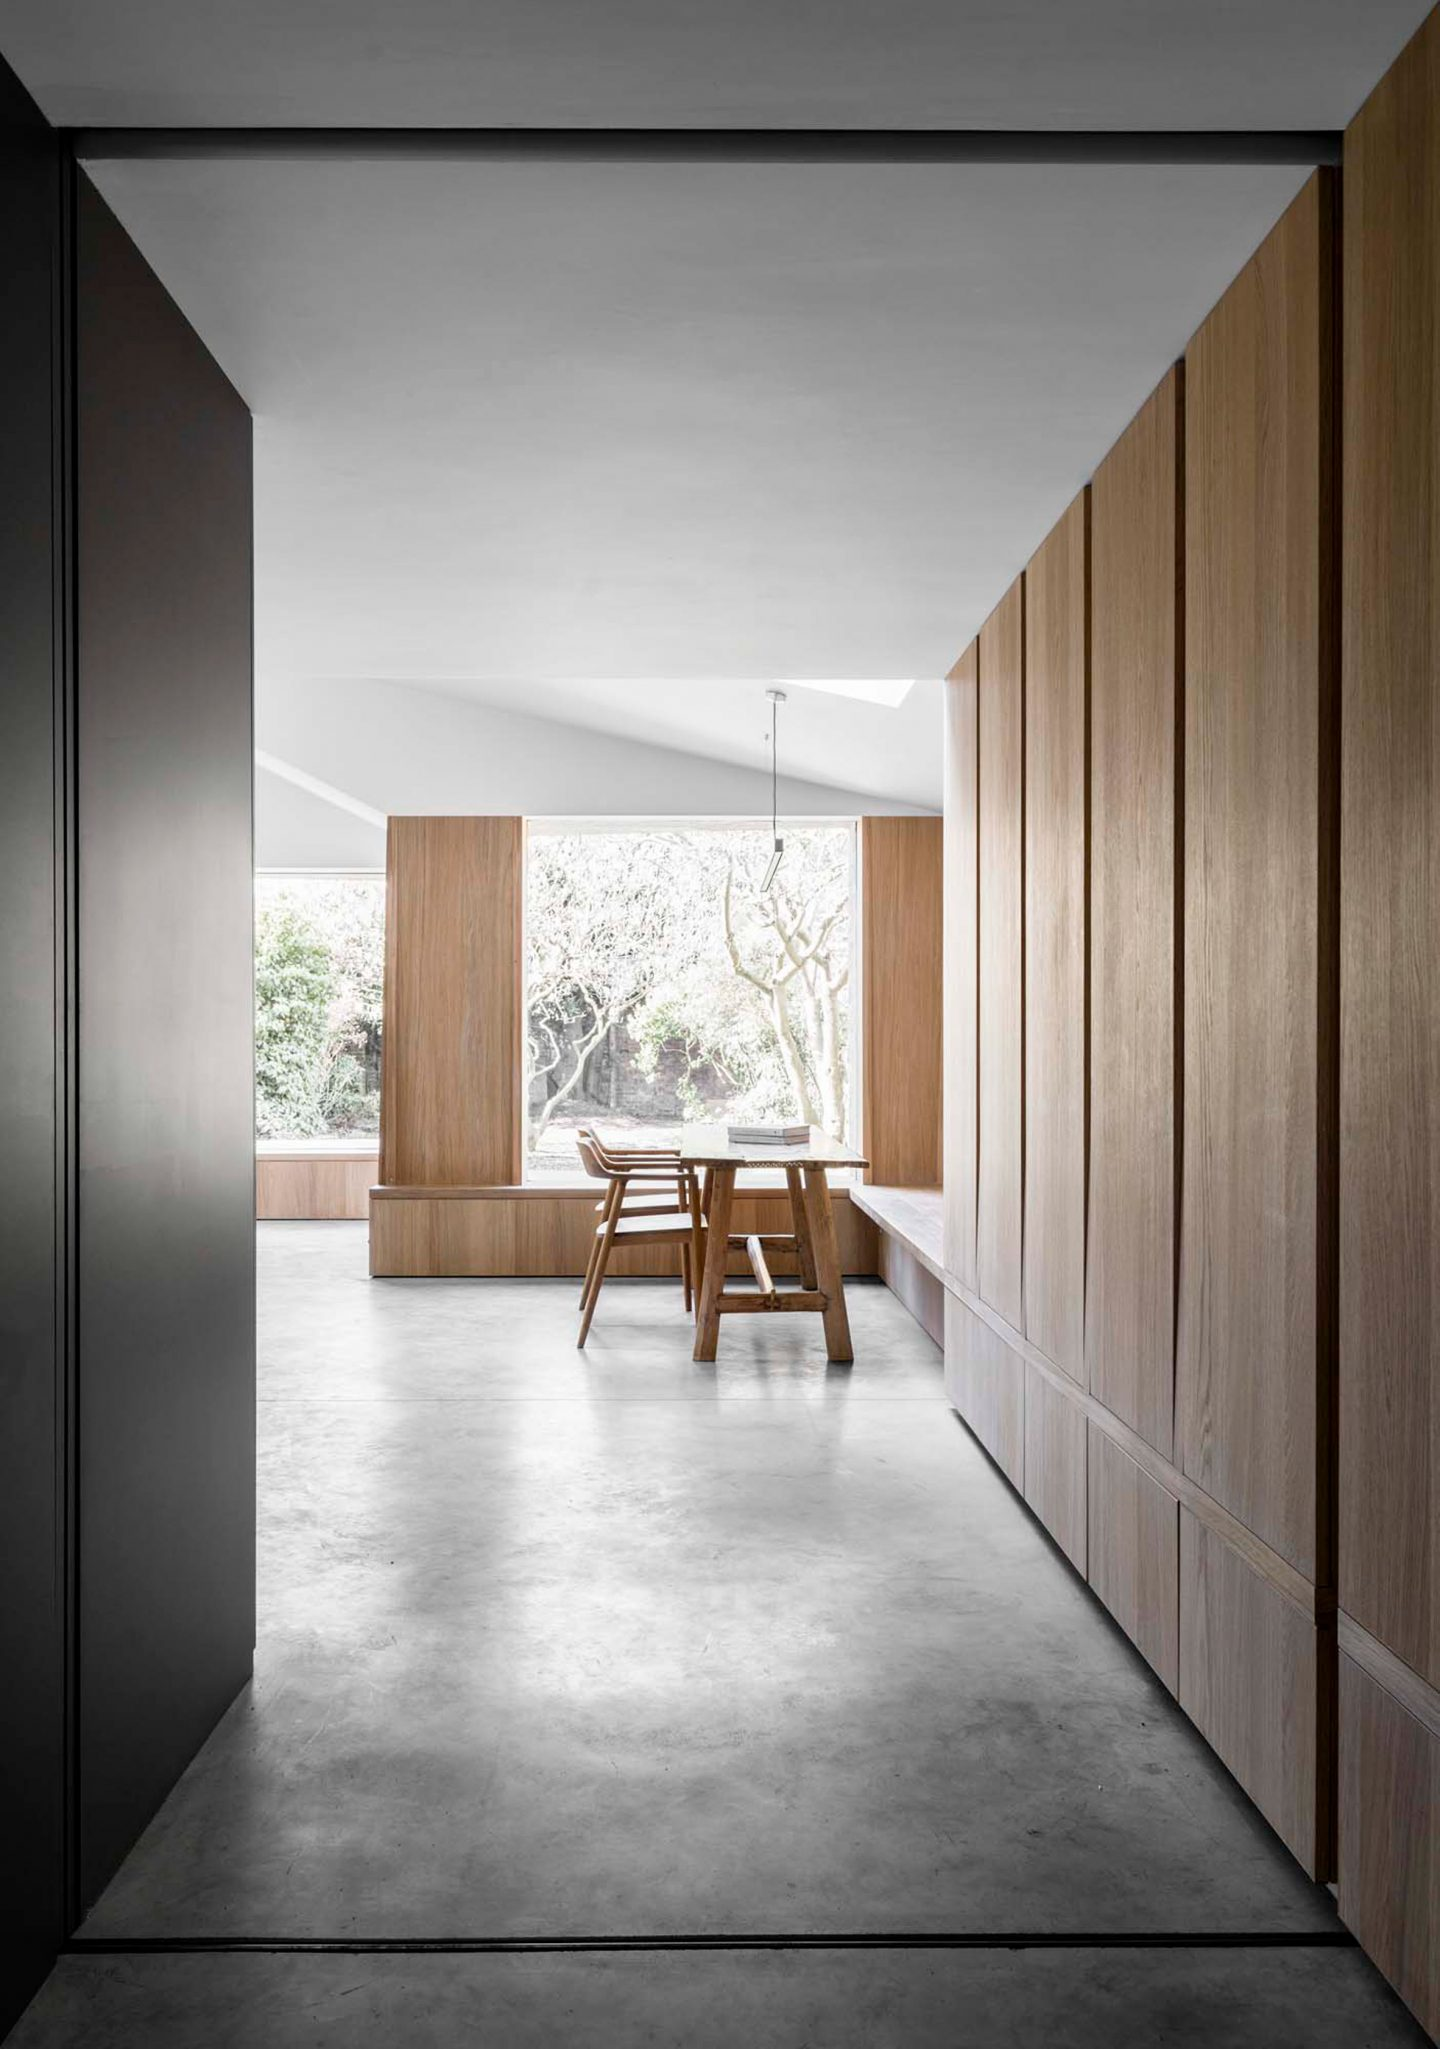 IGNANT-Architecture-Kew-Road-McLaren-Excell-19